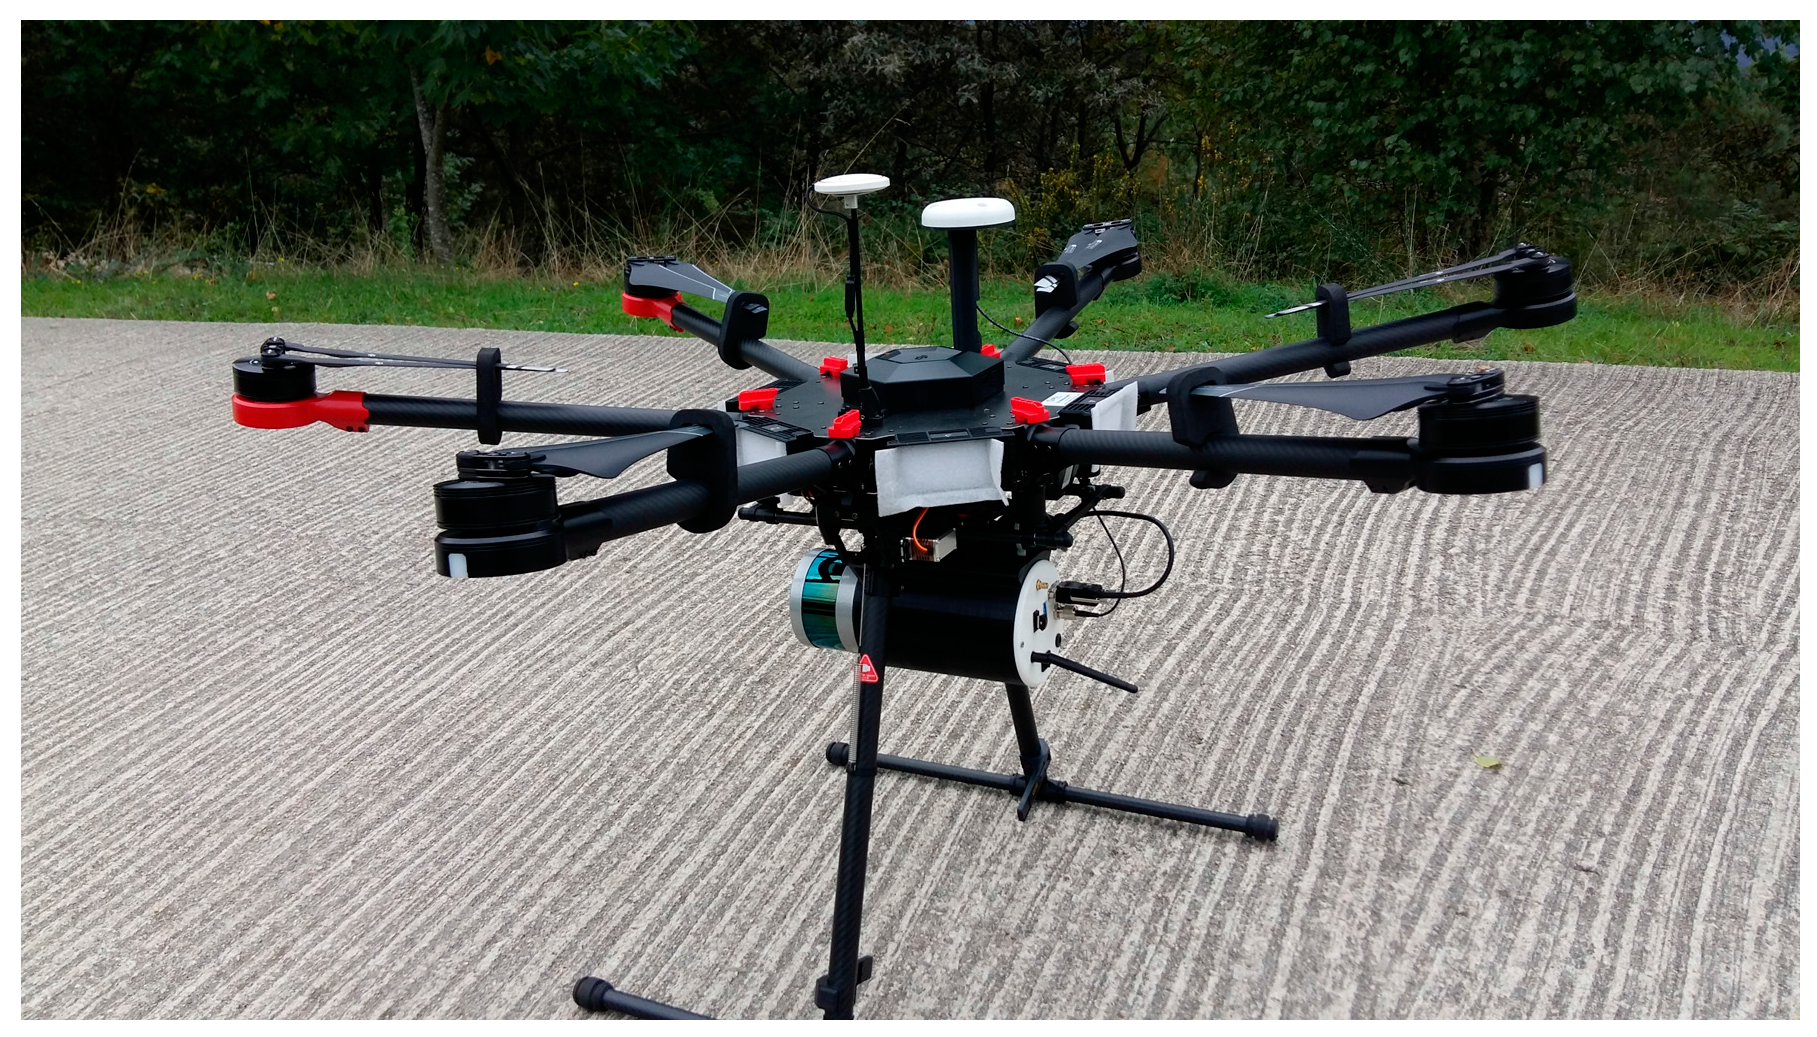 Drones | Free Full-Text | Unmanned Aerial Systems for Civil